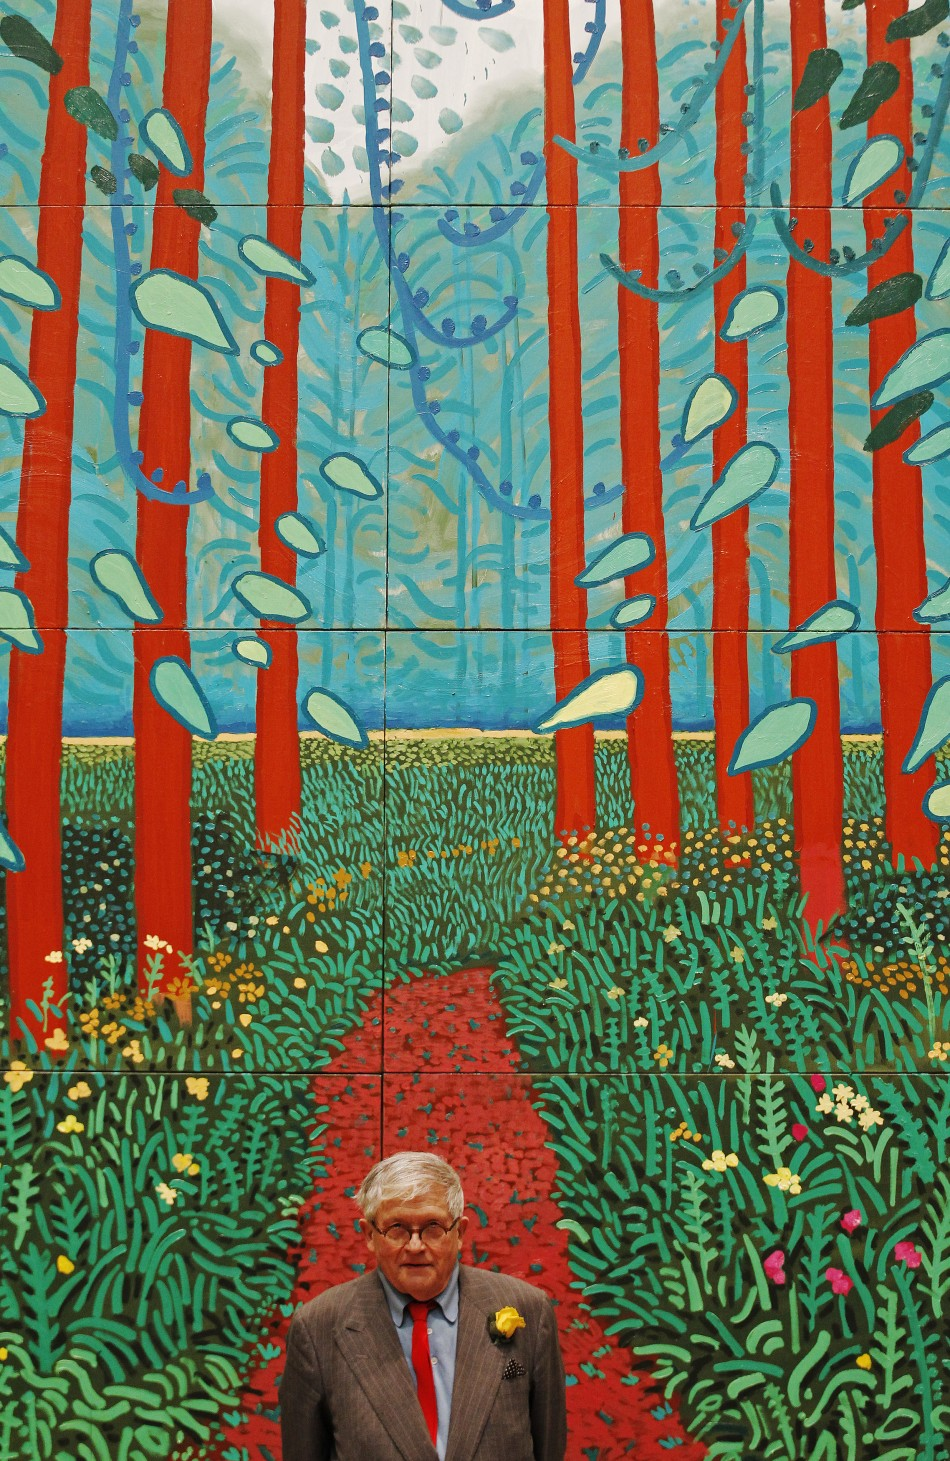 Hockney 39 s 39 a bigger picture at the royal academy for David hockney painting